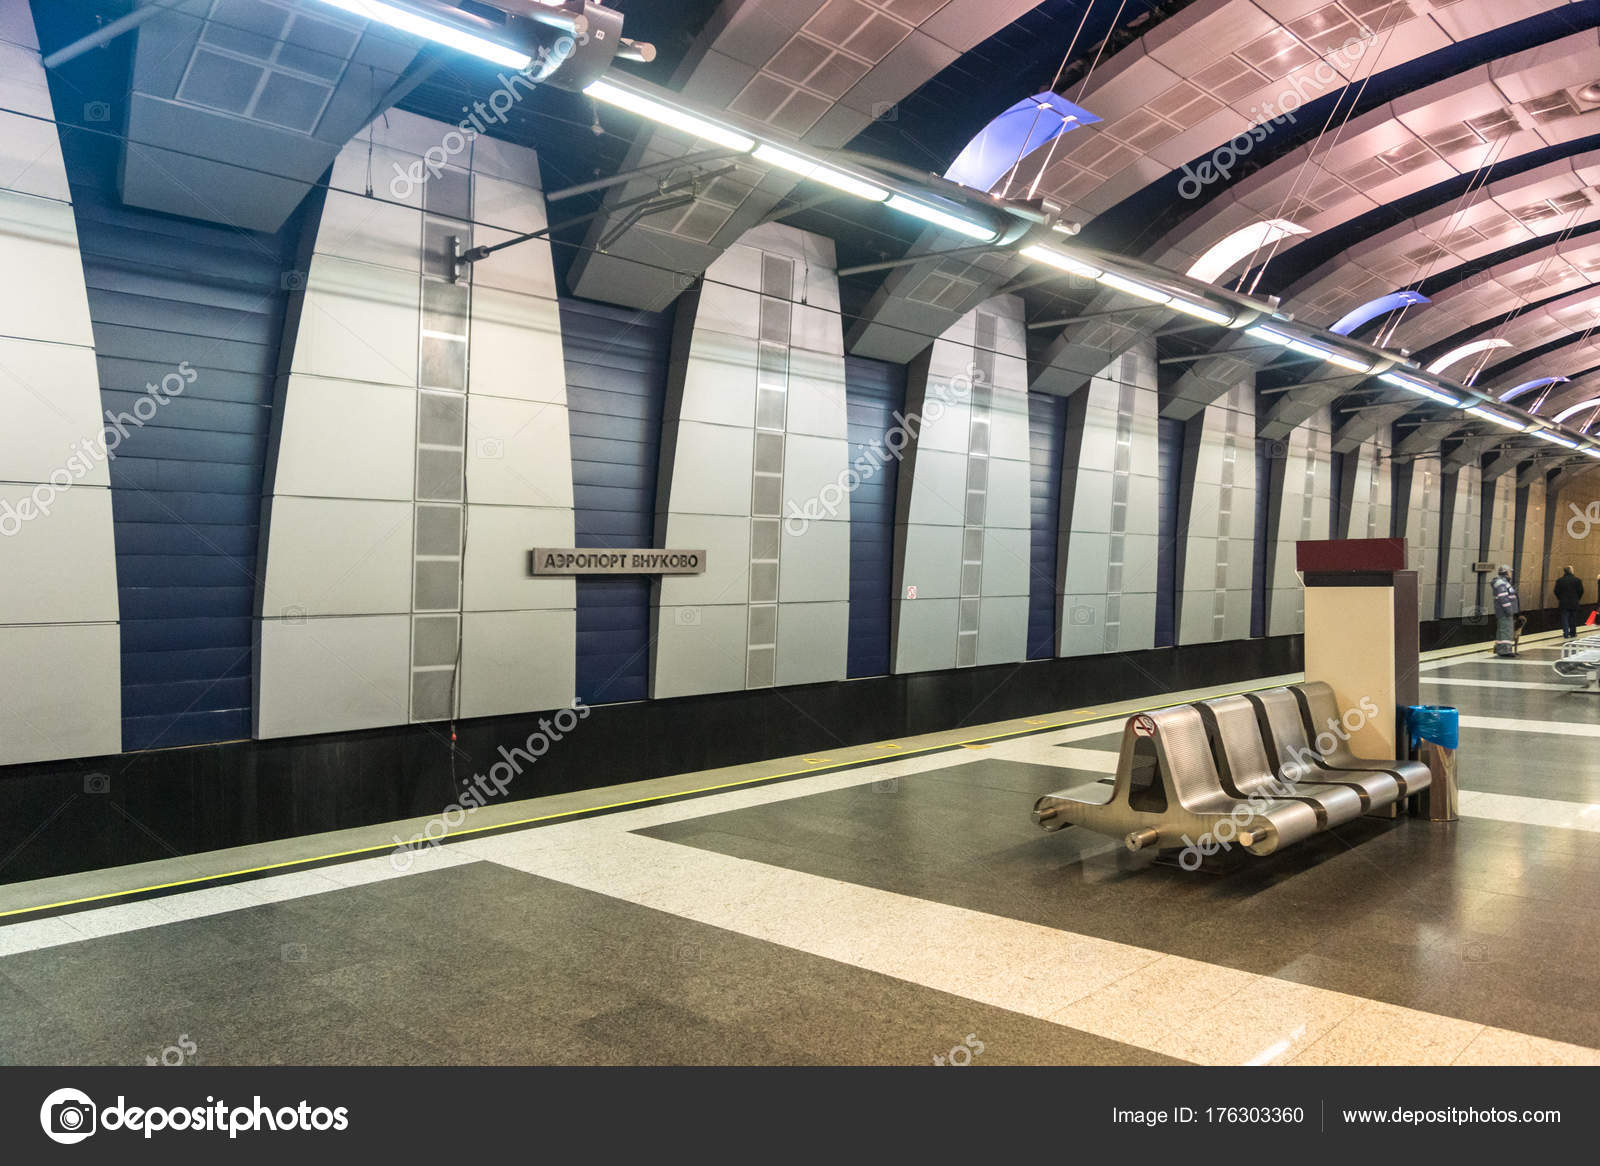 Is there the October station in Moscow 22